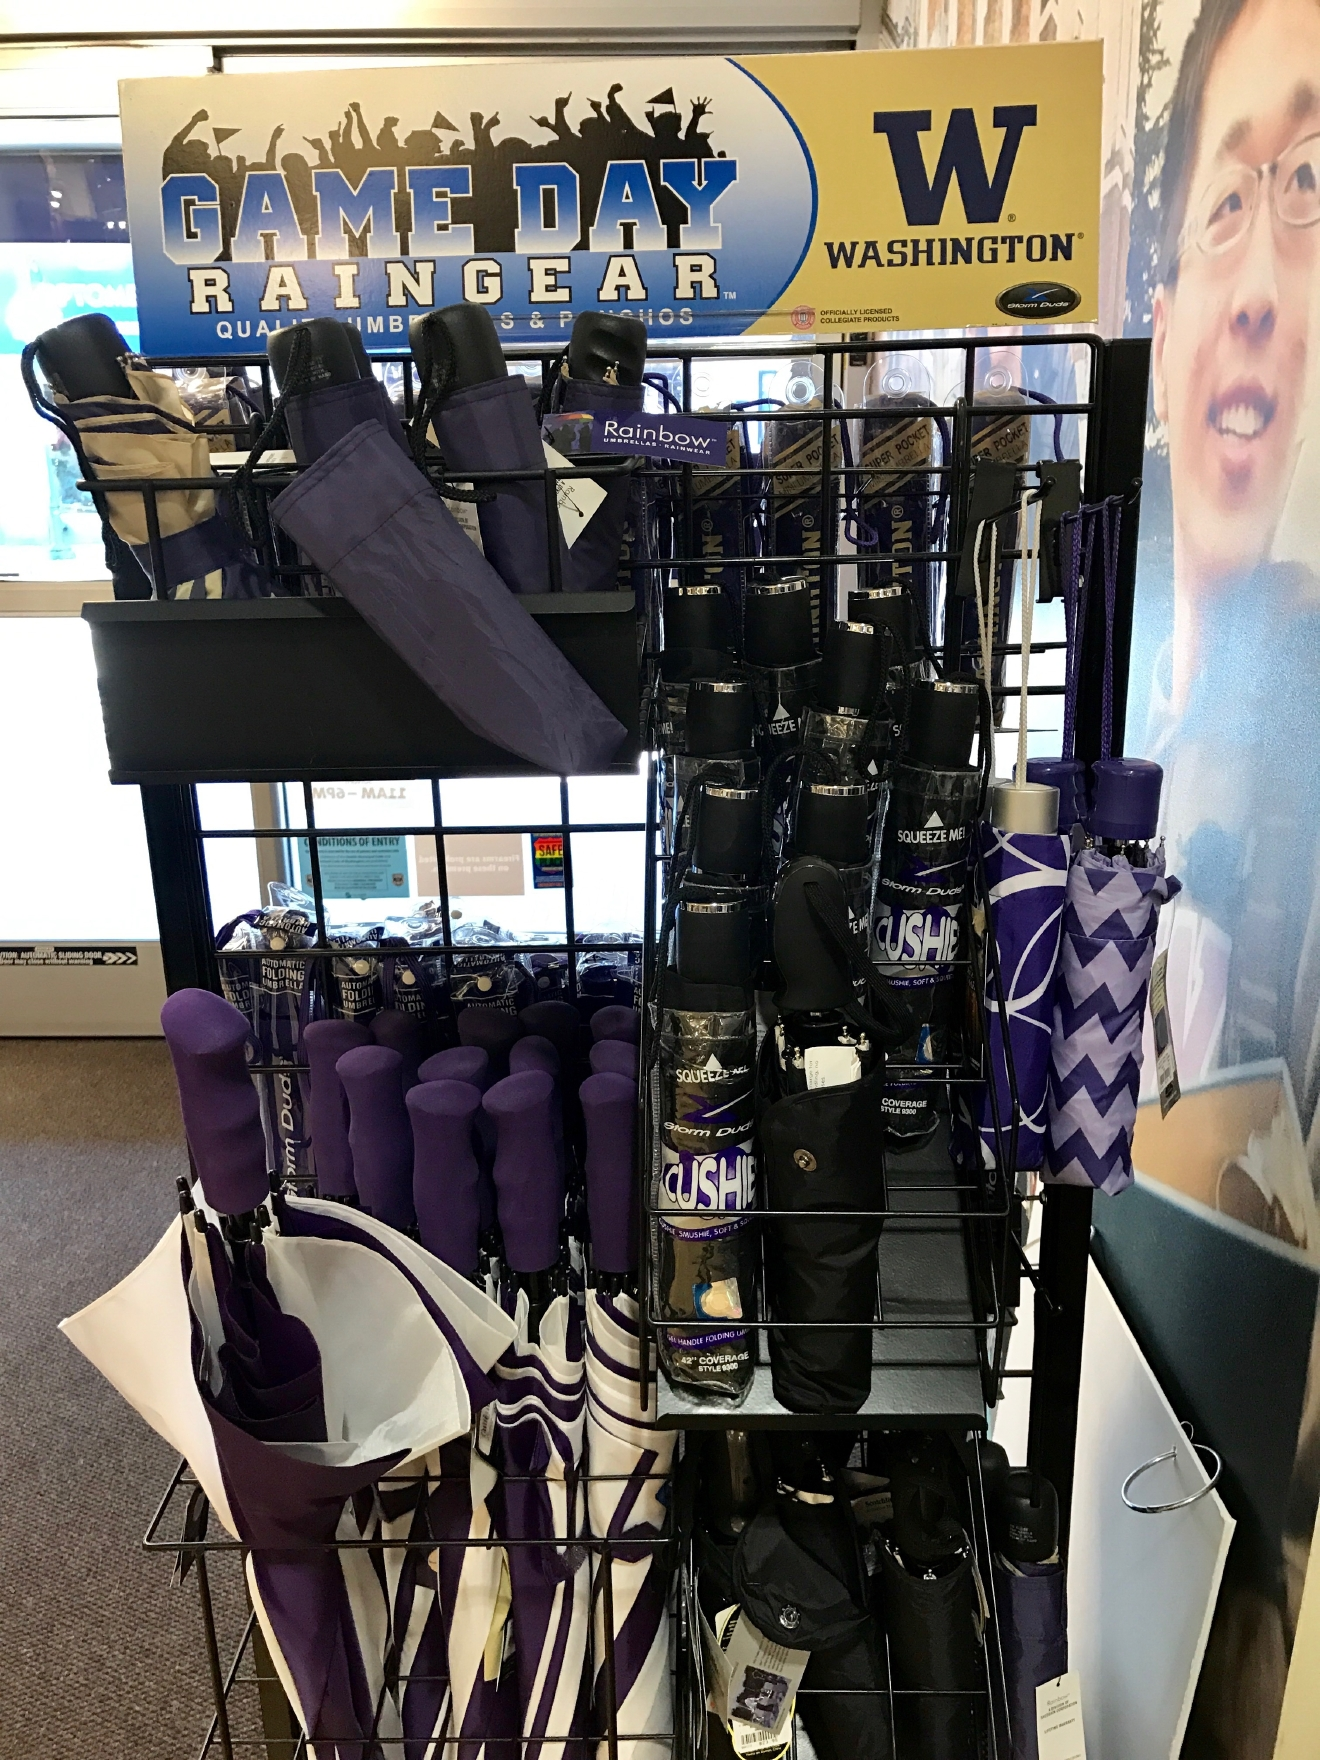 UW Raingear                                          Whether you're a current student, alum, or just *love* the Dawgs, it's a pretty exciting time to be a Husky fan right now. Just to catch you up, the University of Washington football team is having one of their best seasons in years, and will be playing the Peach Bowl in Atlanta on December 31st. If you know a Dawg fan, they're probably salivating at the mouth right about now. Which is why it's a perfect time to give them a themed gift! Here are some of the coolest Husky gear we saw at the University Bookstore on the Avenue during our last visit. Pro Tip: They're open 10 a.m. - 7 p.m. on Christmas Eve! (Image: Britt Thorson / Seattle Refined)